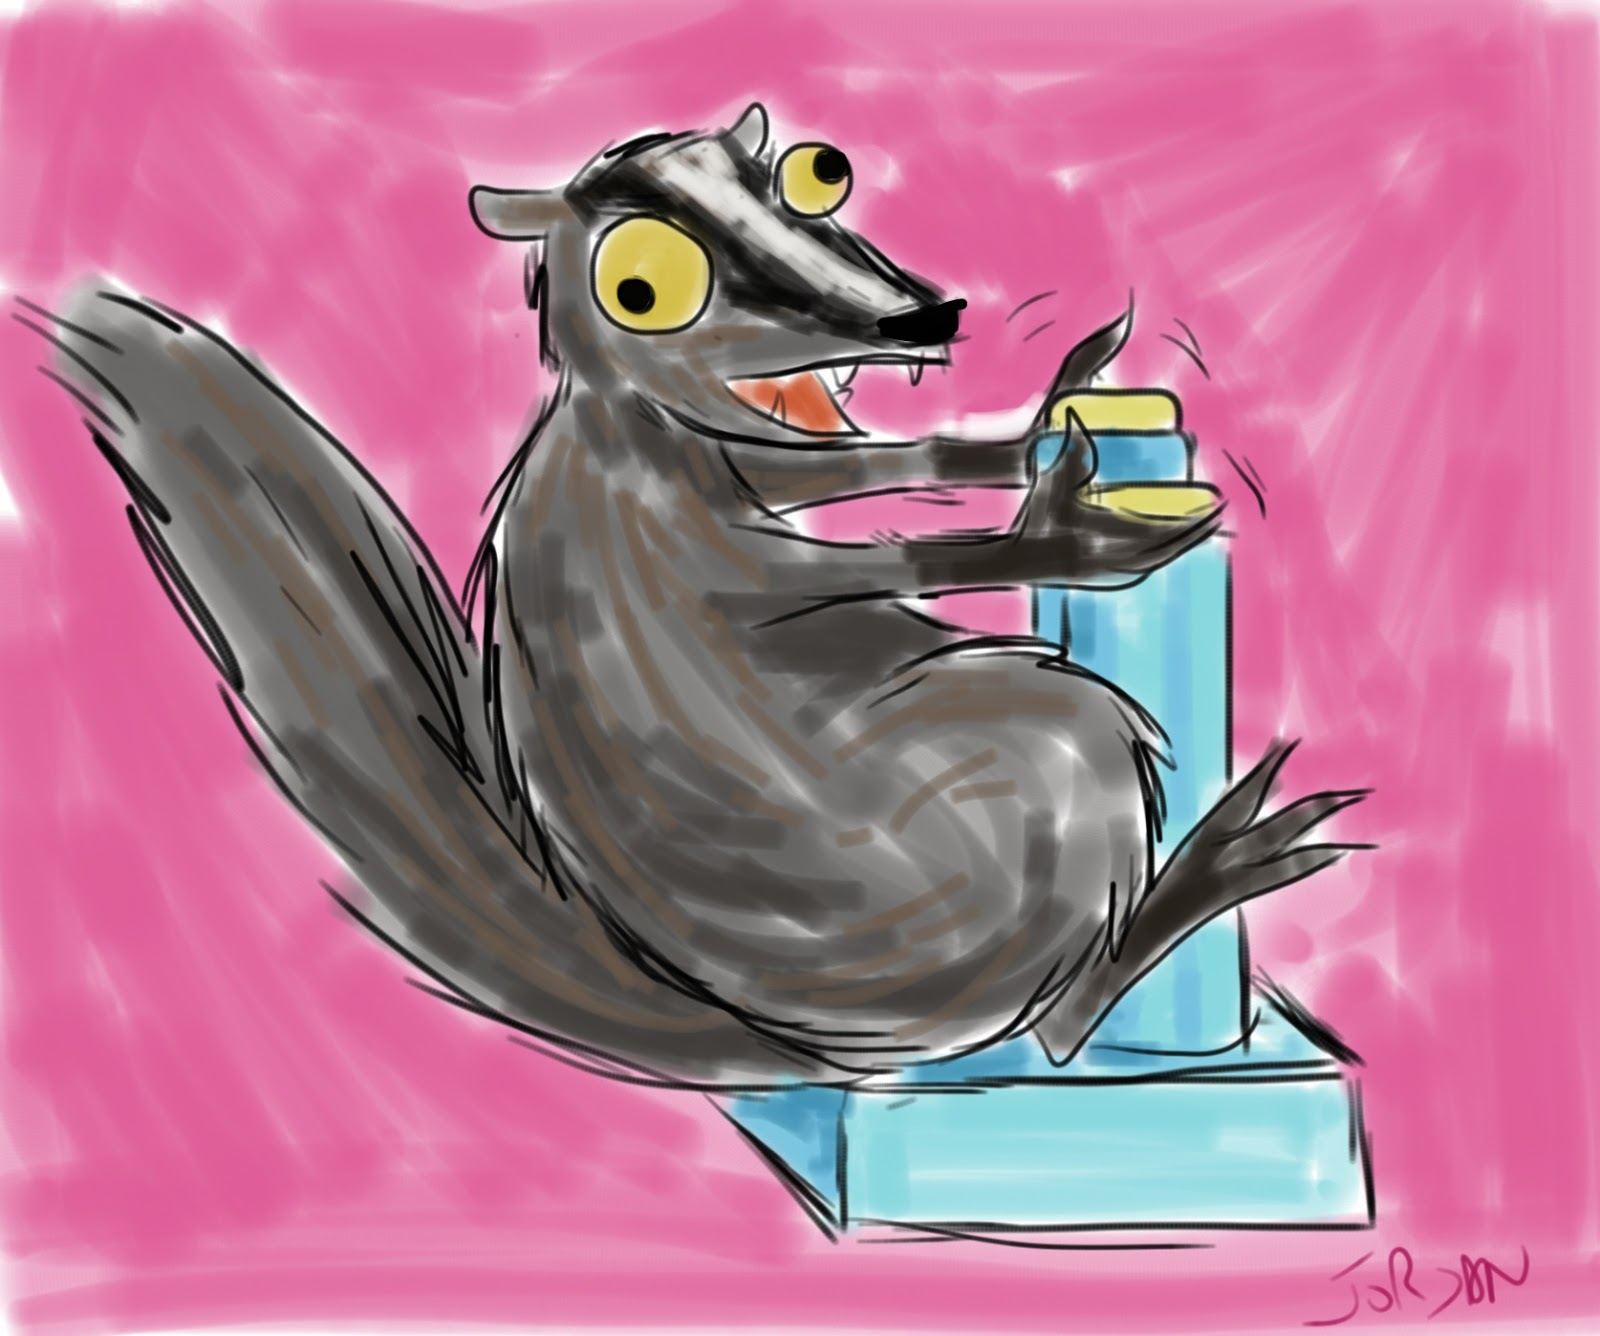 Drawing of badger playing with robot controls. GIRL, CRAFTED blog.